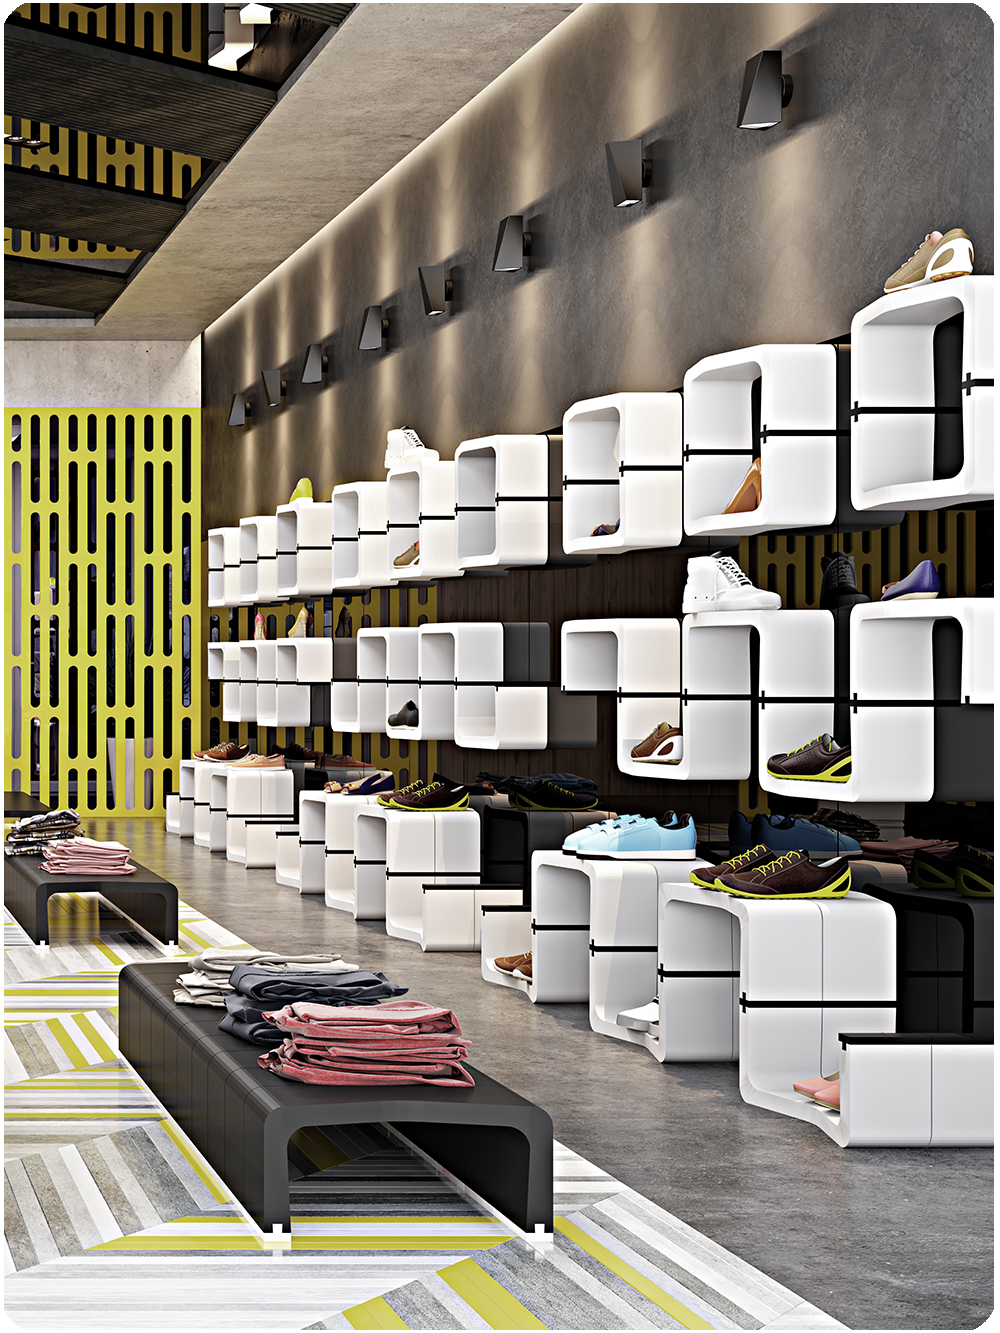 U CUBE shop fitting furniture shelving shoe movisi